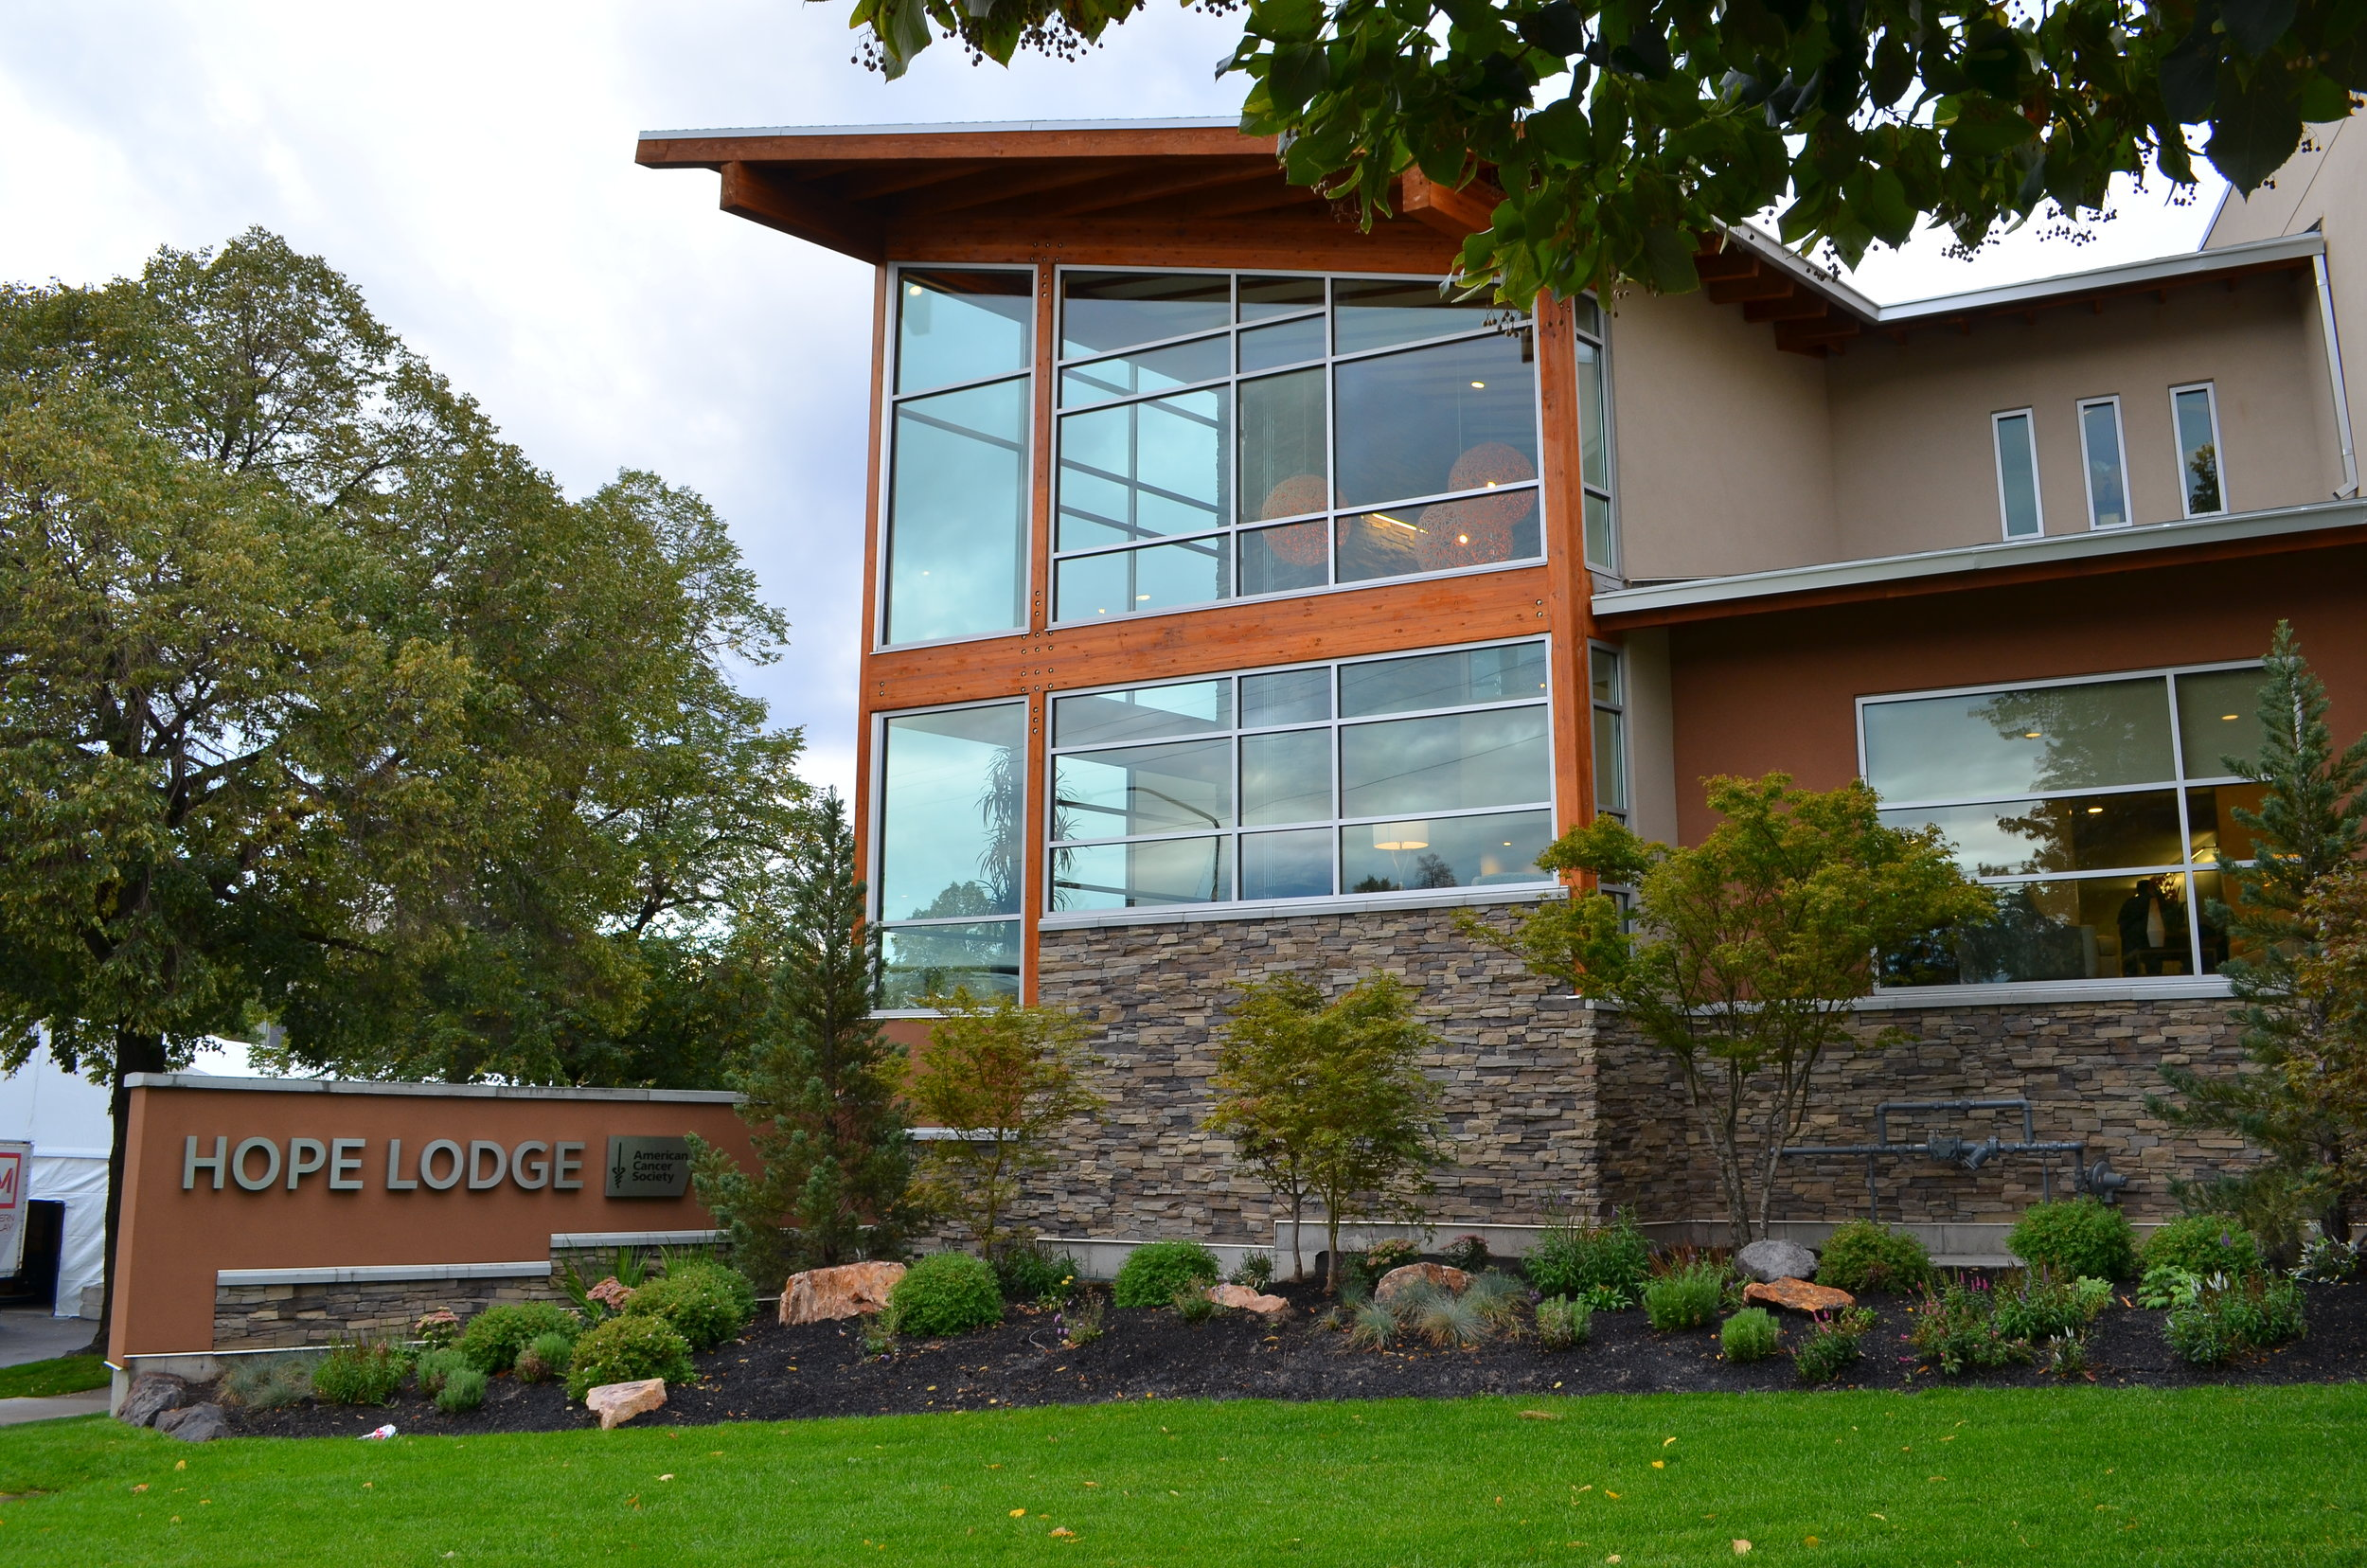 About the lodge - The Hope Lodge program provides a free home away from home for cancer patients and their caregivers